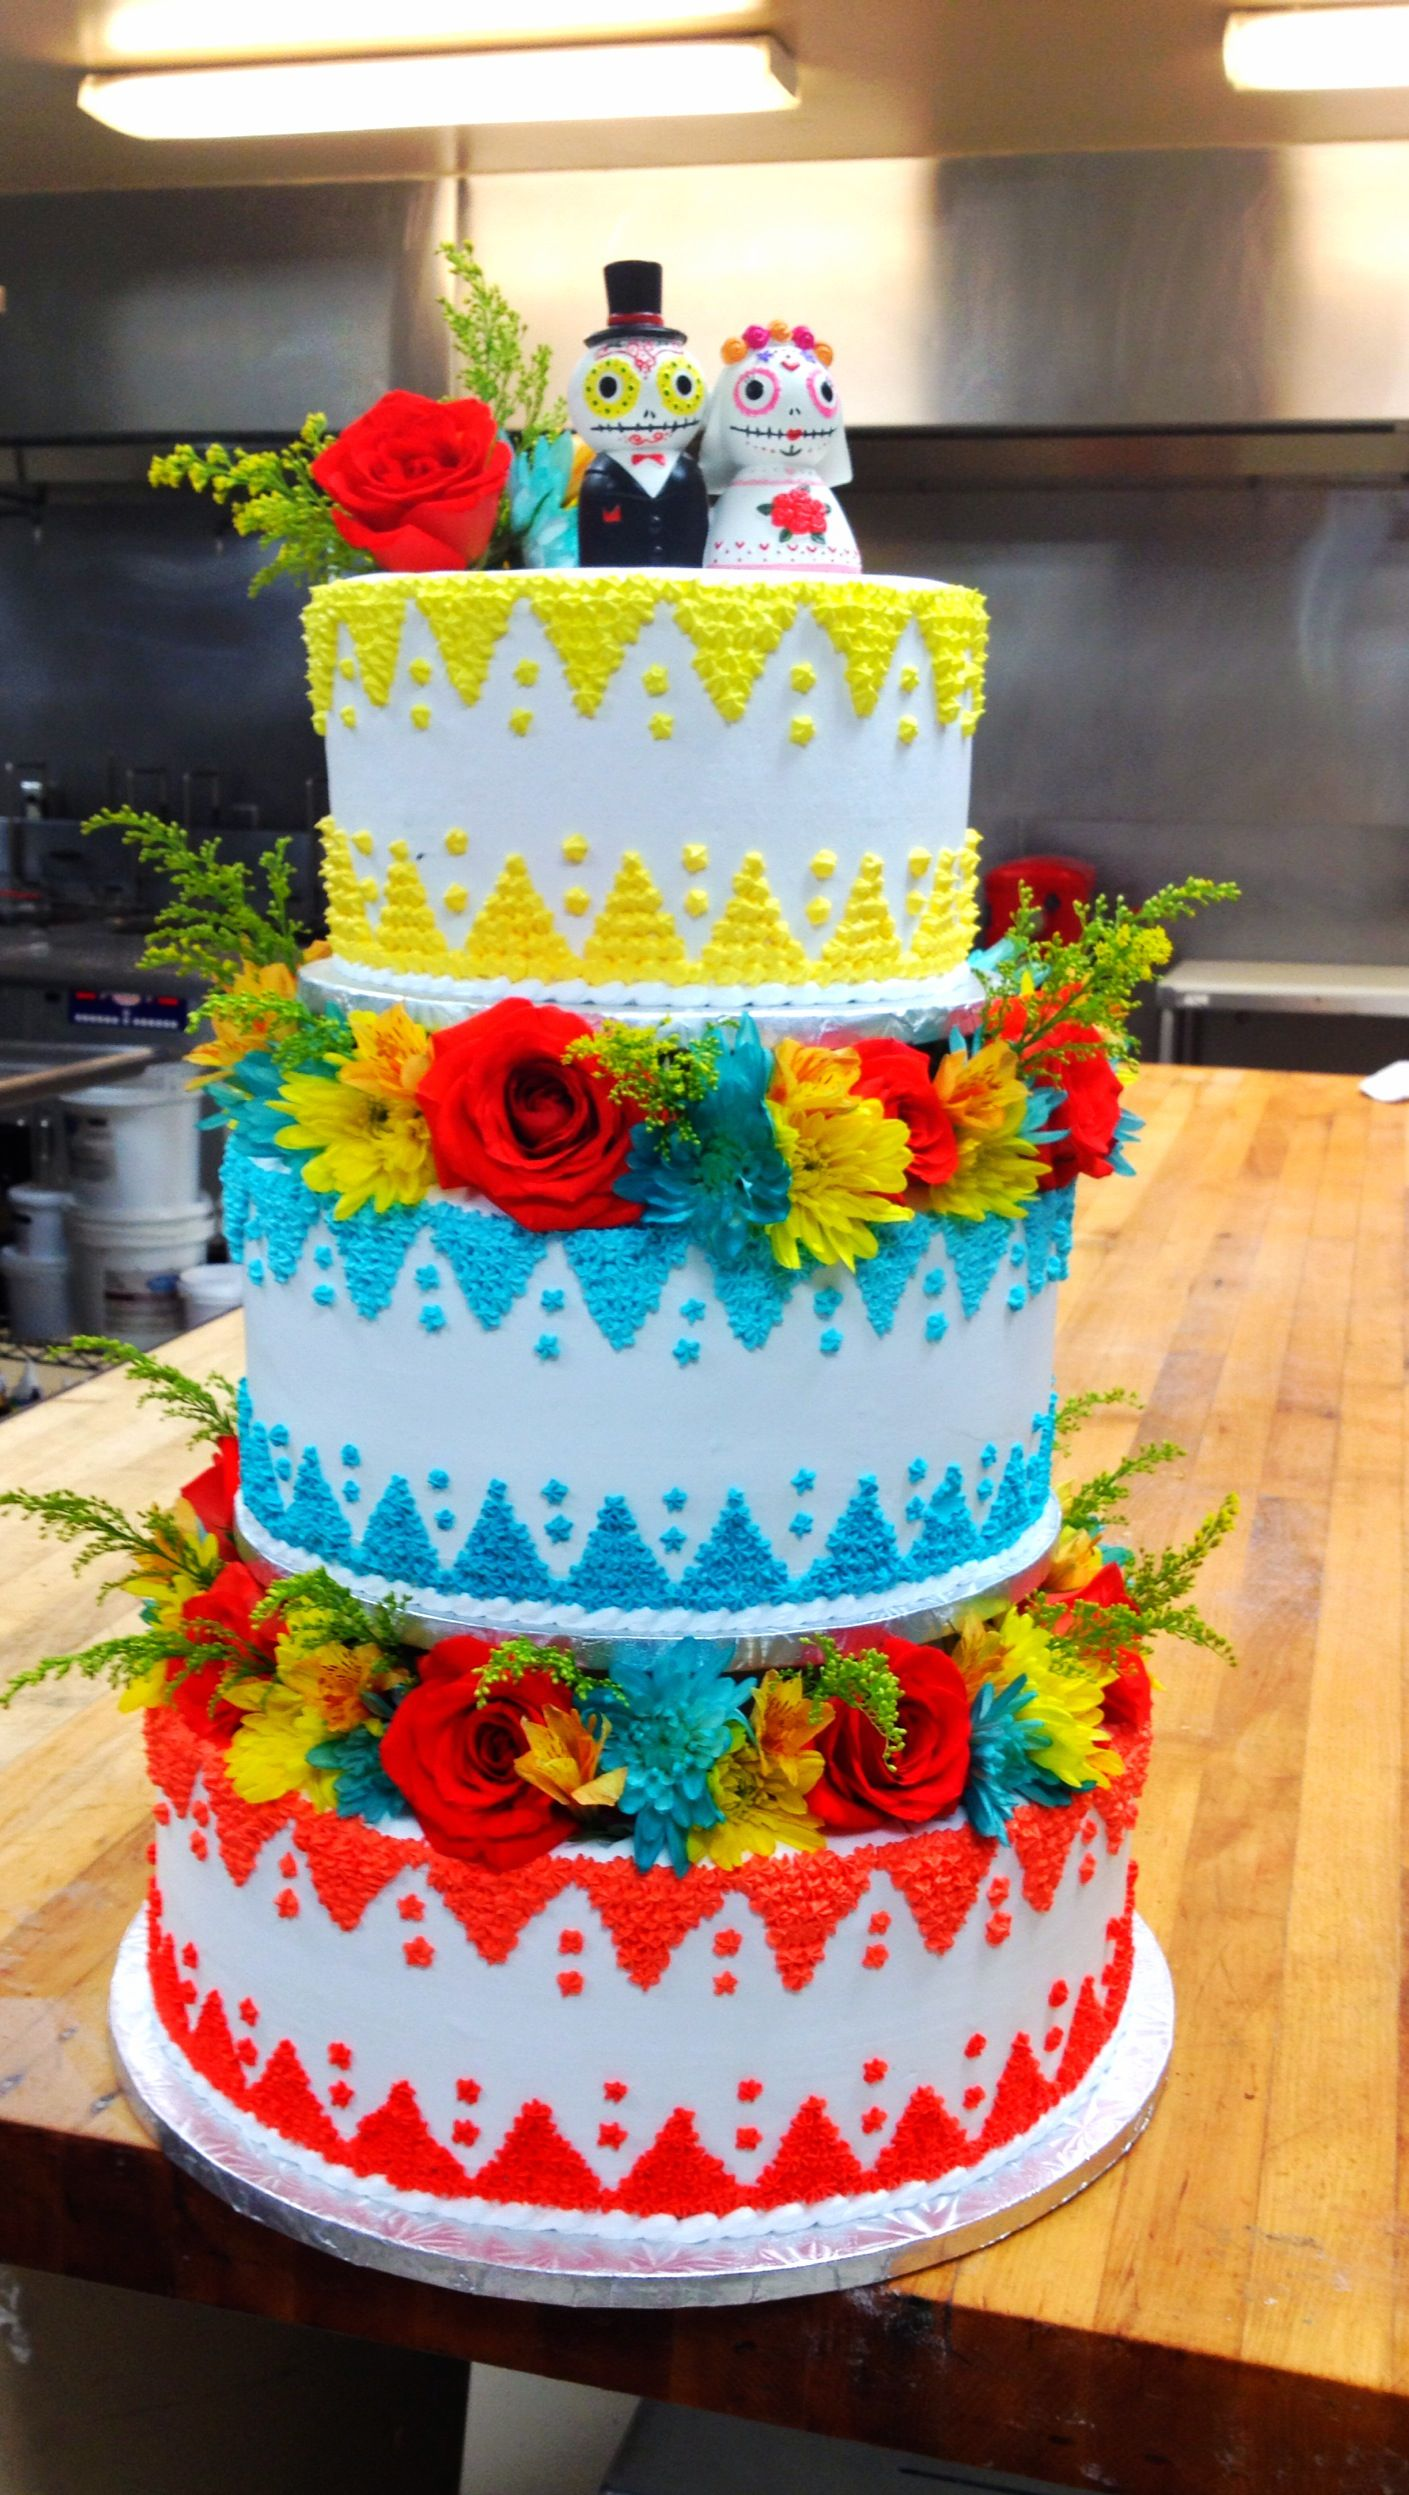 Mexican Cake for a wedding | Day of the Dead Wedding cakes and more ...